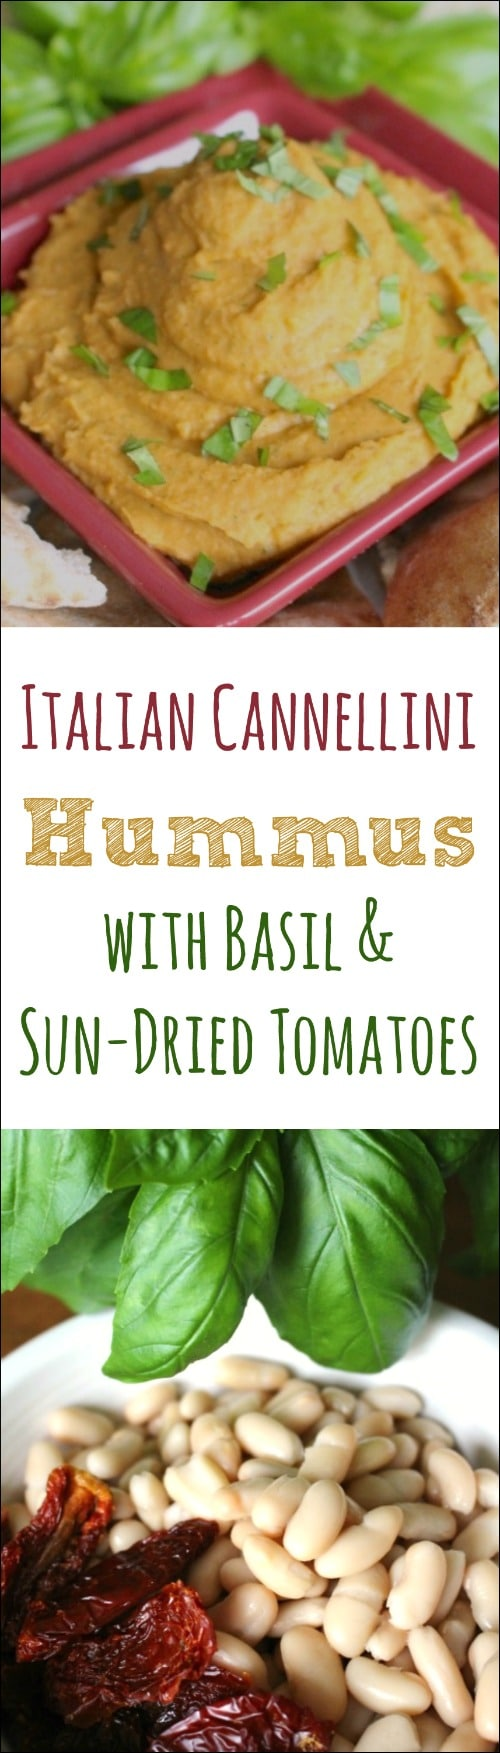 Italian Cannellini Hummus with Basil and Sun-Dried Tomatoes Recipe {www.TwoHealthyKitchens.com}